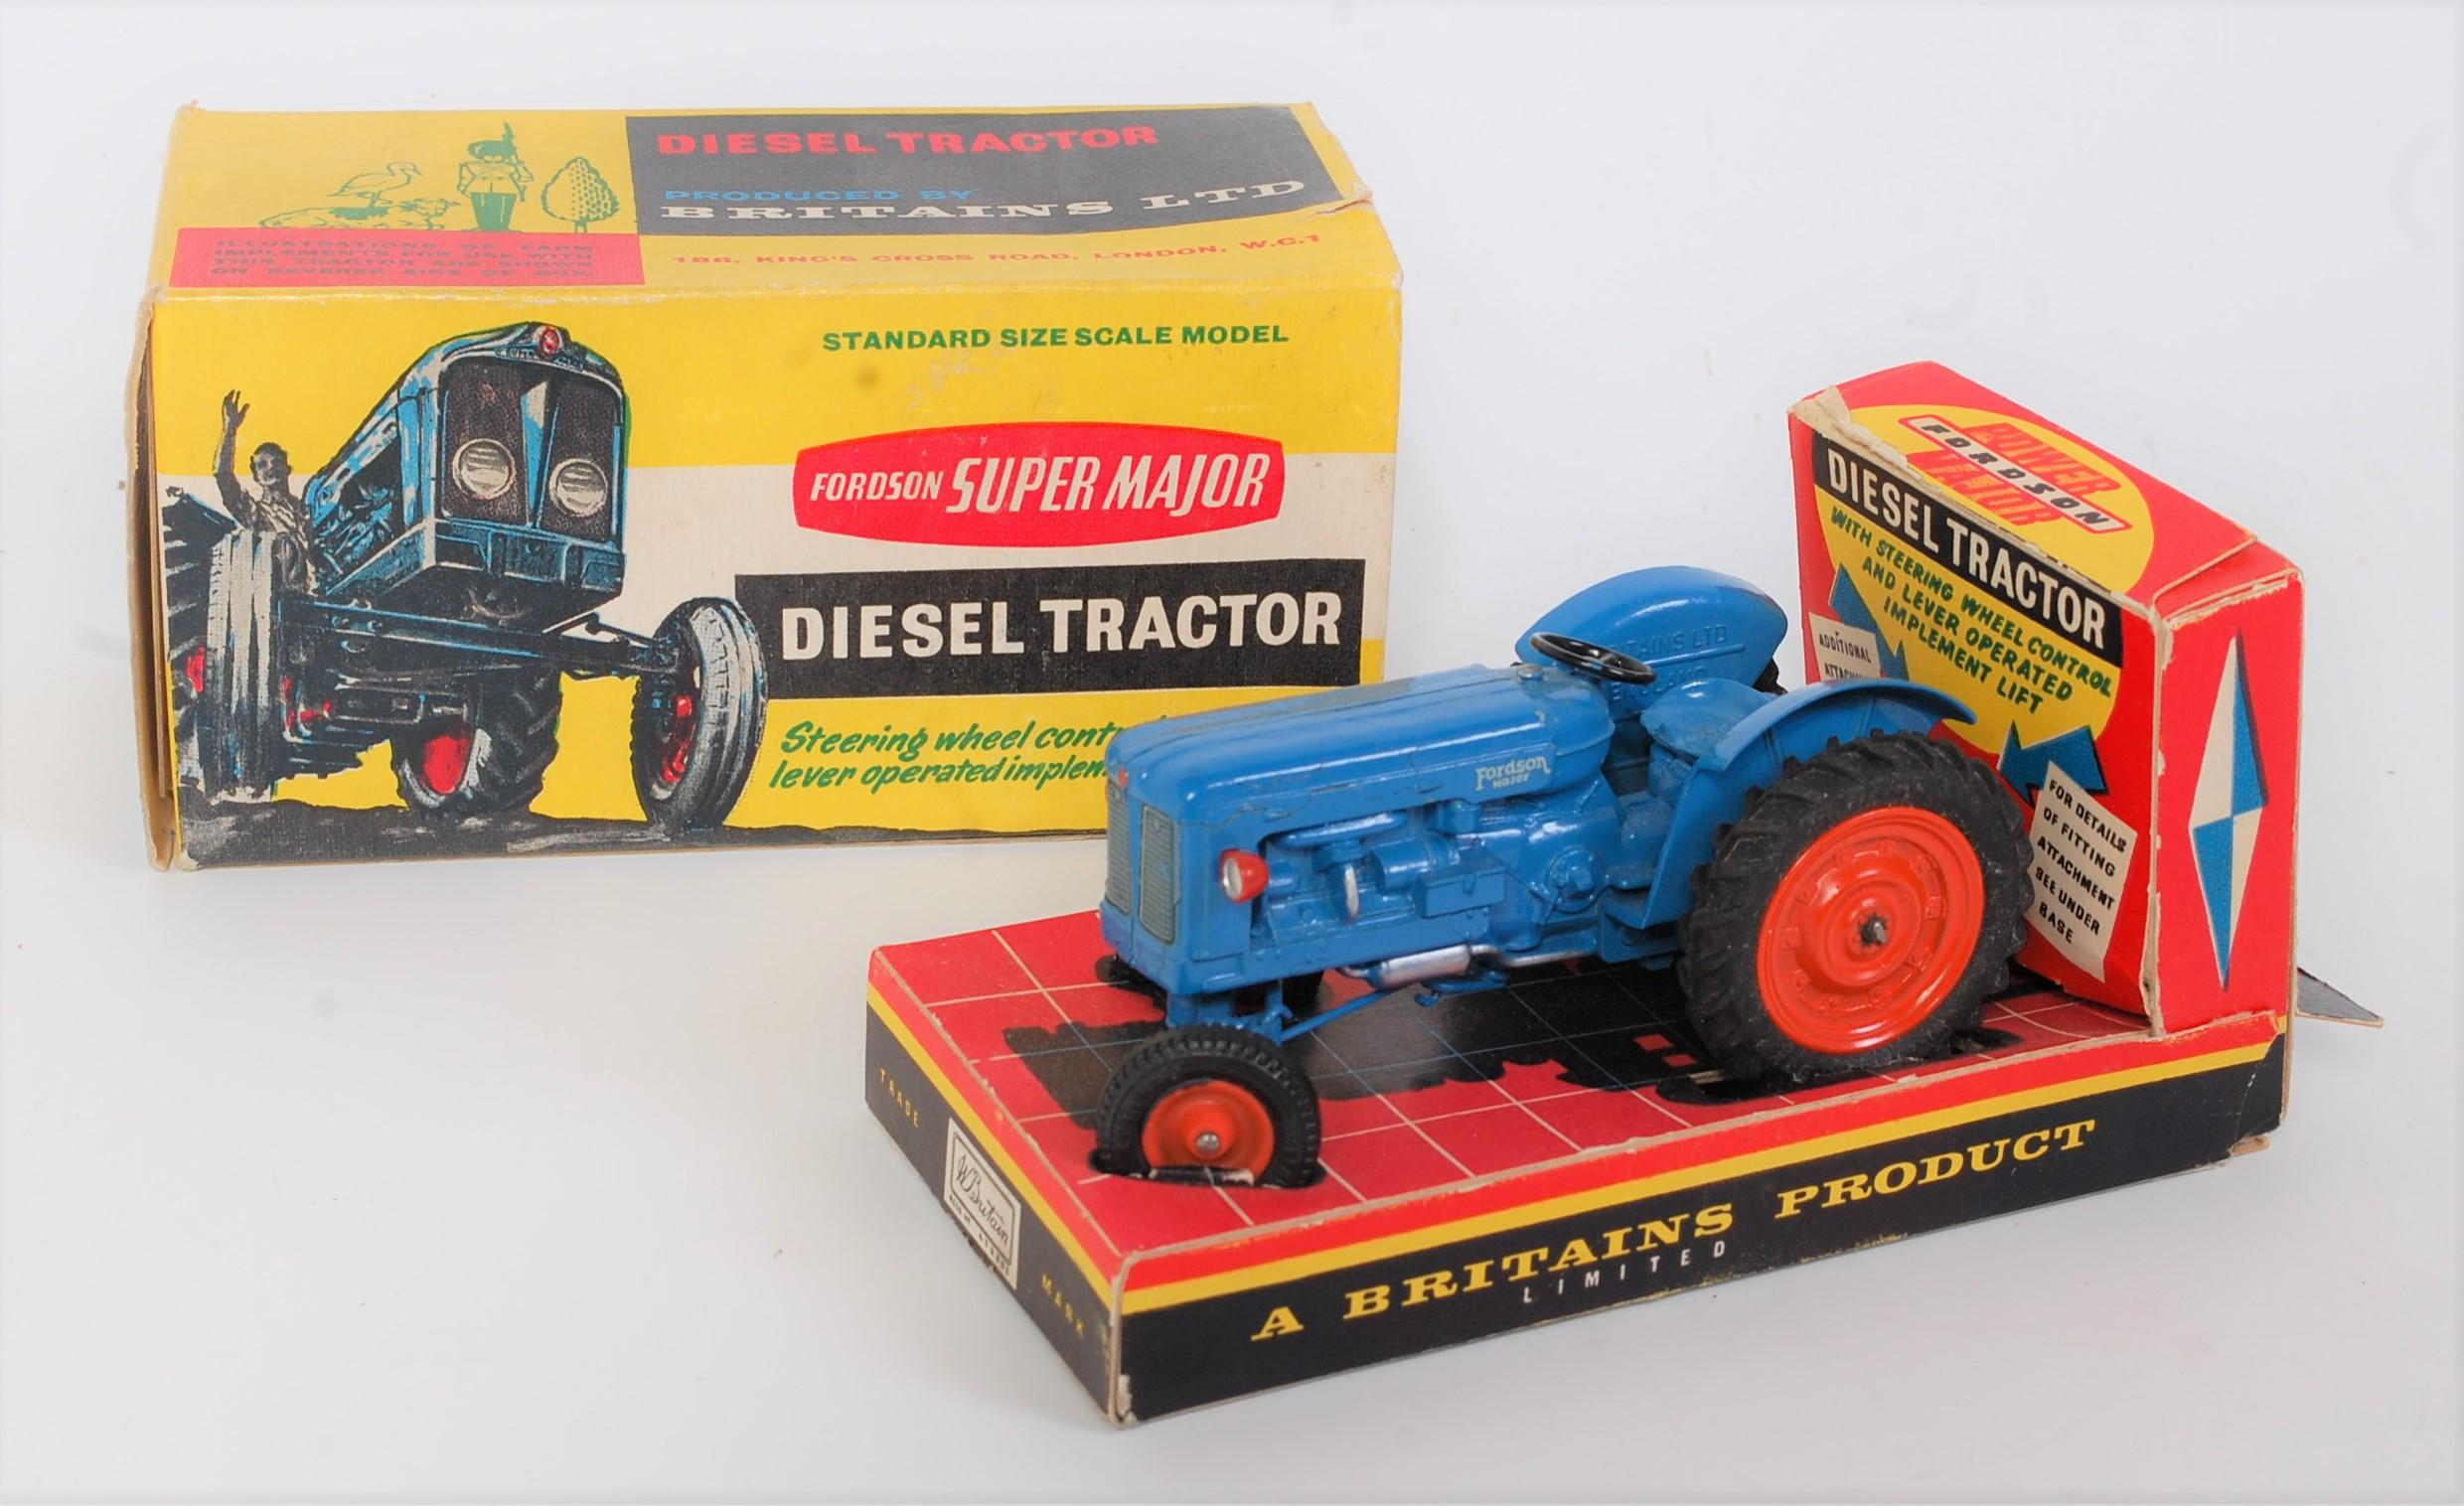 A Britains No. 172F Fordson Supermajor diesel tractor comprising of blue body with orange diecast